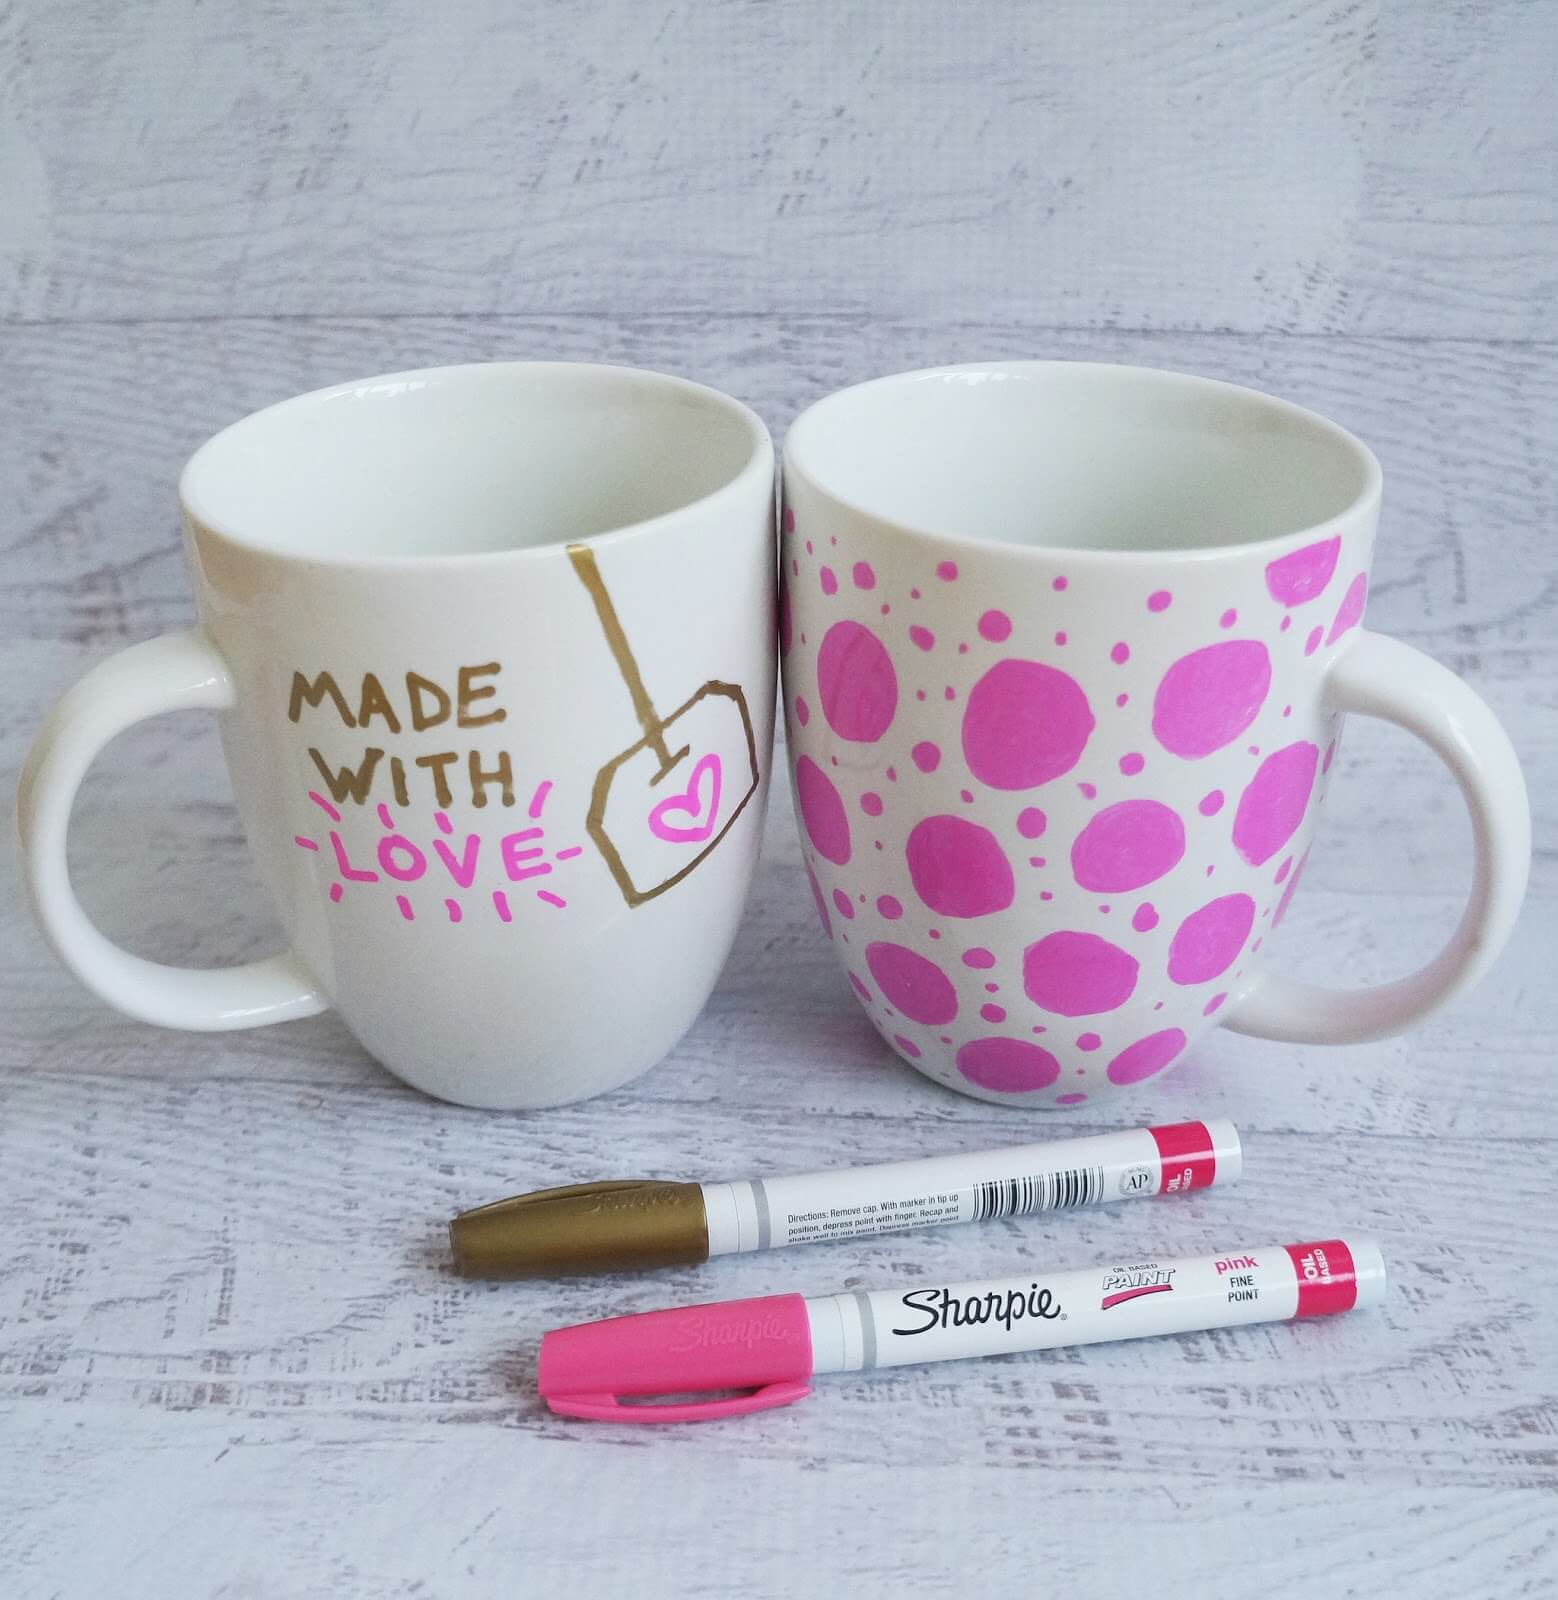 Wonderful little DIY mugs to put in your home kitchen